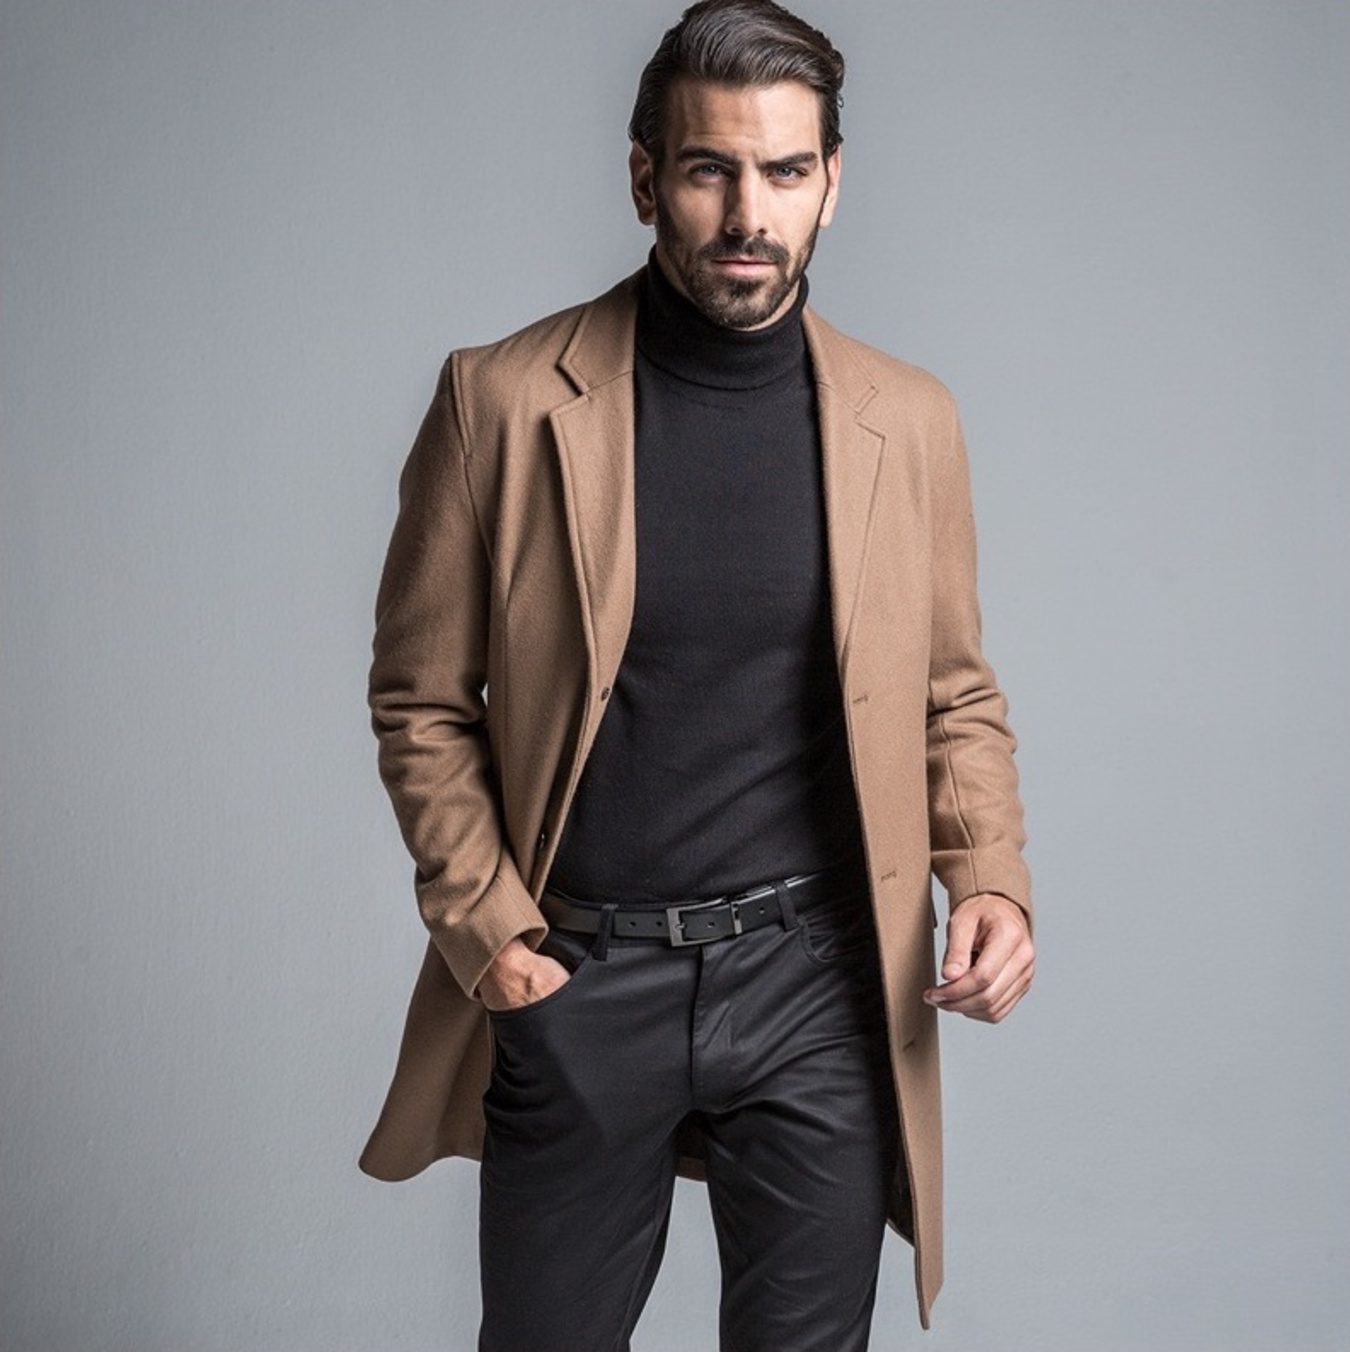 Nyle-DiMarco-2016-INC-International-Concepts-Campaign-009.jpg